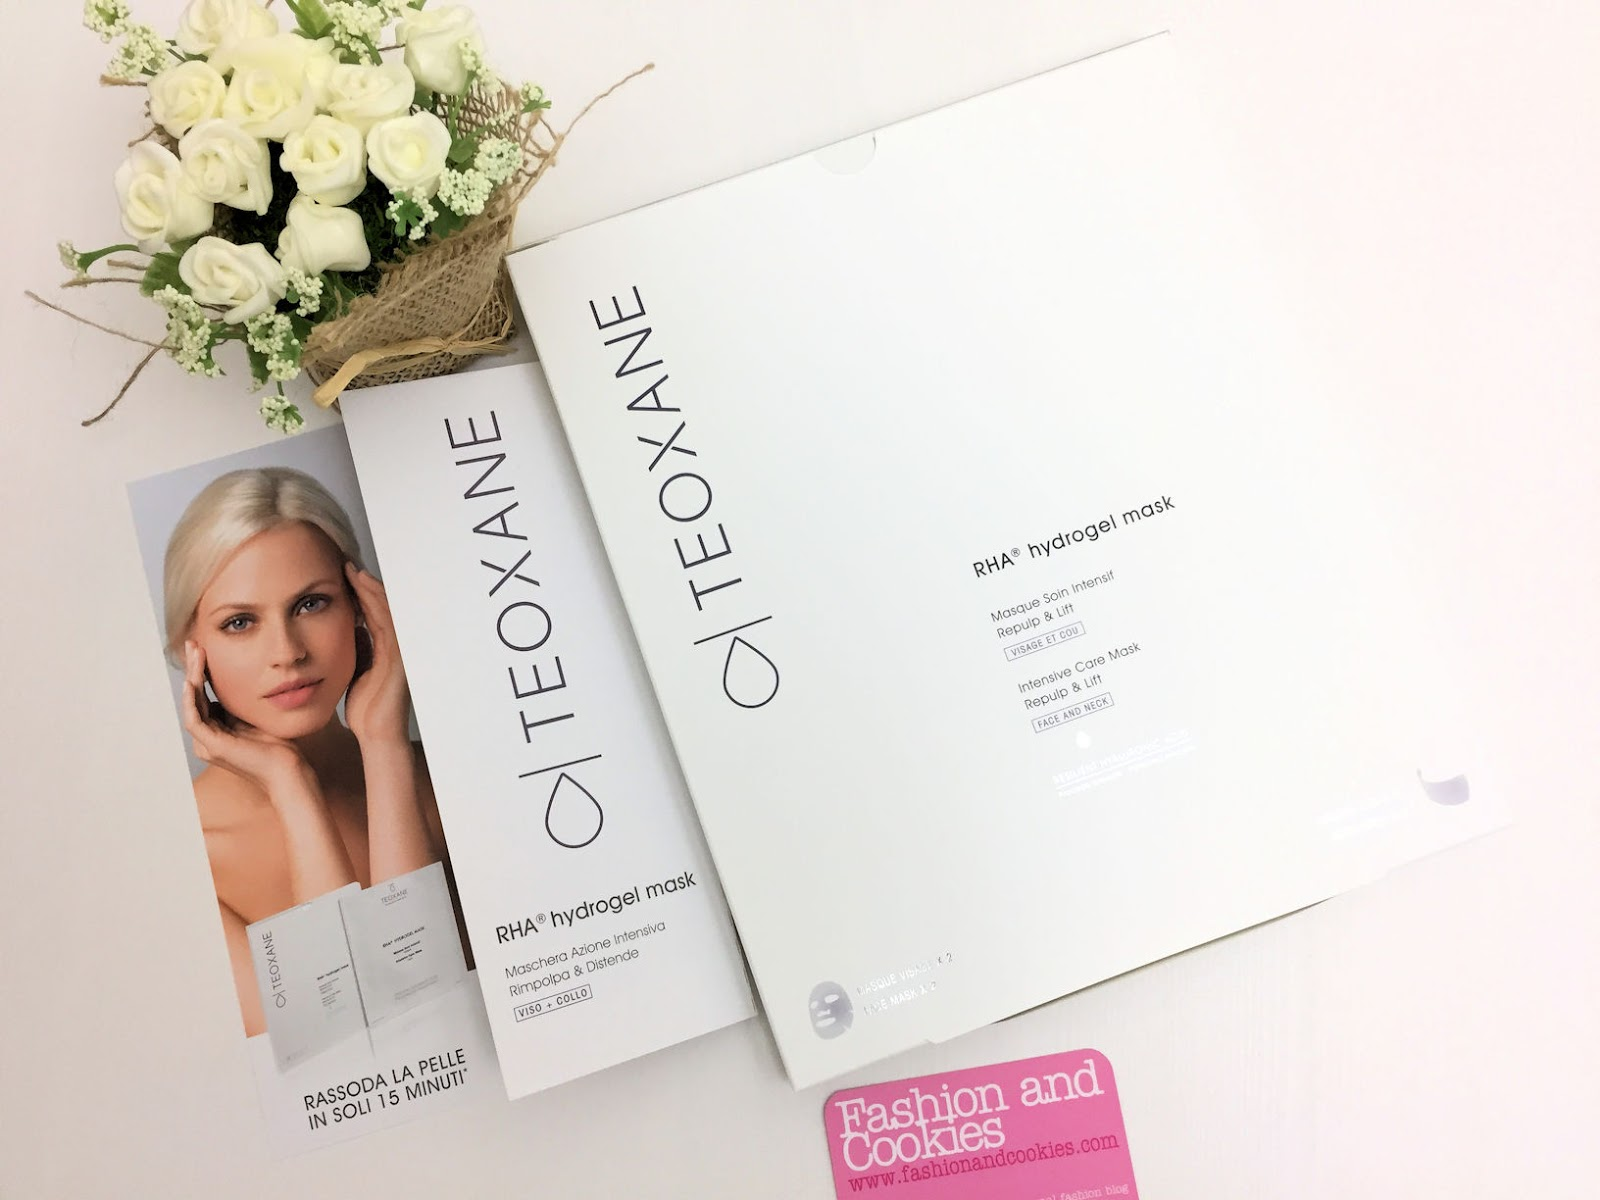 Teoxane RHA Hydrogel Mask review and presentation on Fashion and Cookies beauty blog, beauty blogger